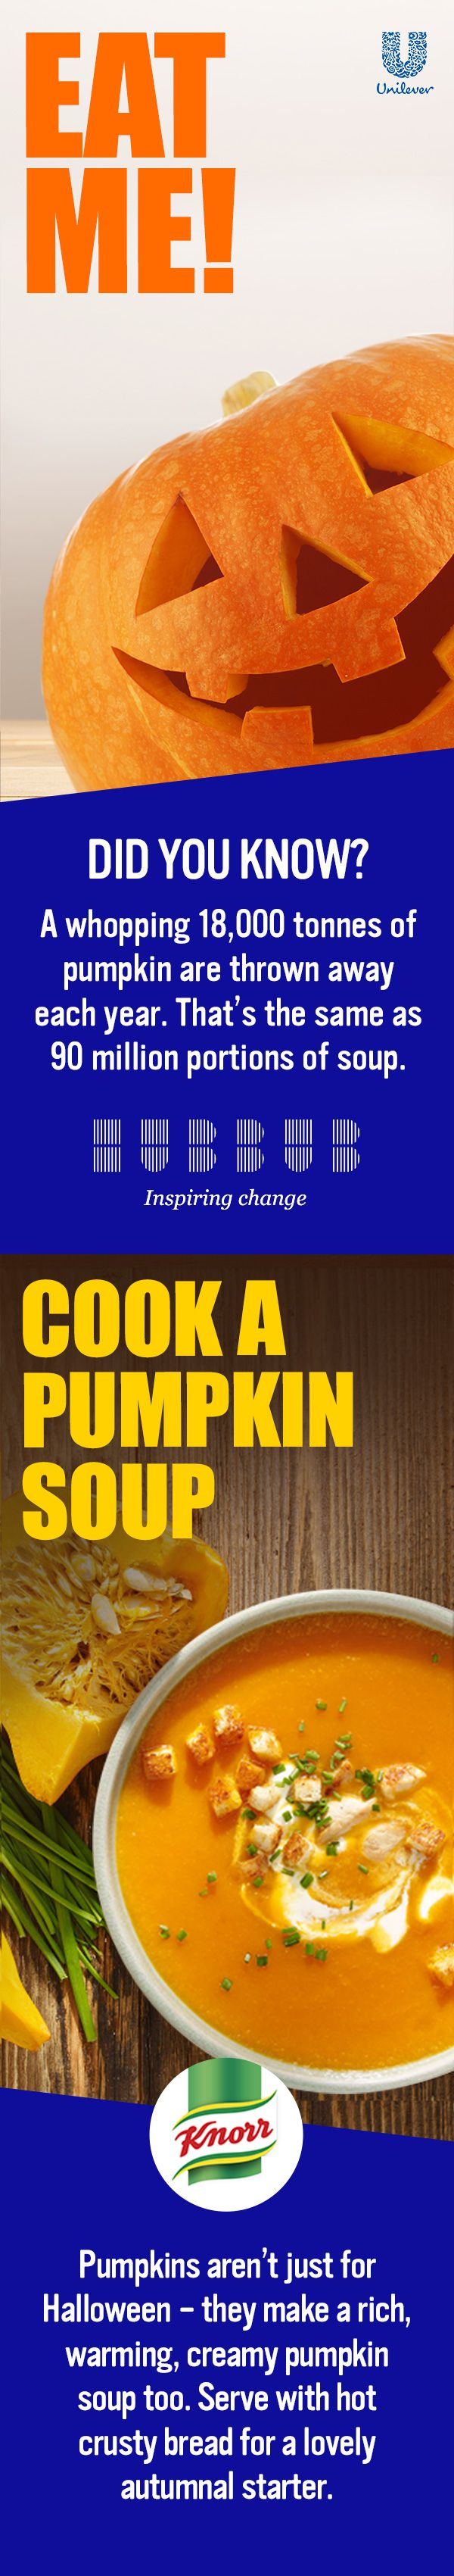 Did you know: A whopping 18,000 tonnes of Pumpkin are thrown away each year? That's the same as 90M portions of soup. Join Hubbub and Unilever in inspiring change. Get involved here: https://brightfuture.unilever.co.uk/stories/494523/Turn-your-carvings-into-cravings-this-Halloween.aspx. Pumpkins aren't just for Halloween, they make a rich, creamy pumpkin soup too. With freshly grated root ginger providing a zesty flavour, serve a delicious bowl of Knorr Pumpkin Soup with a swirl of Elmlea.